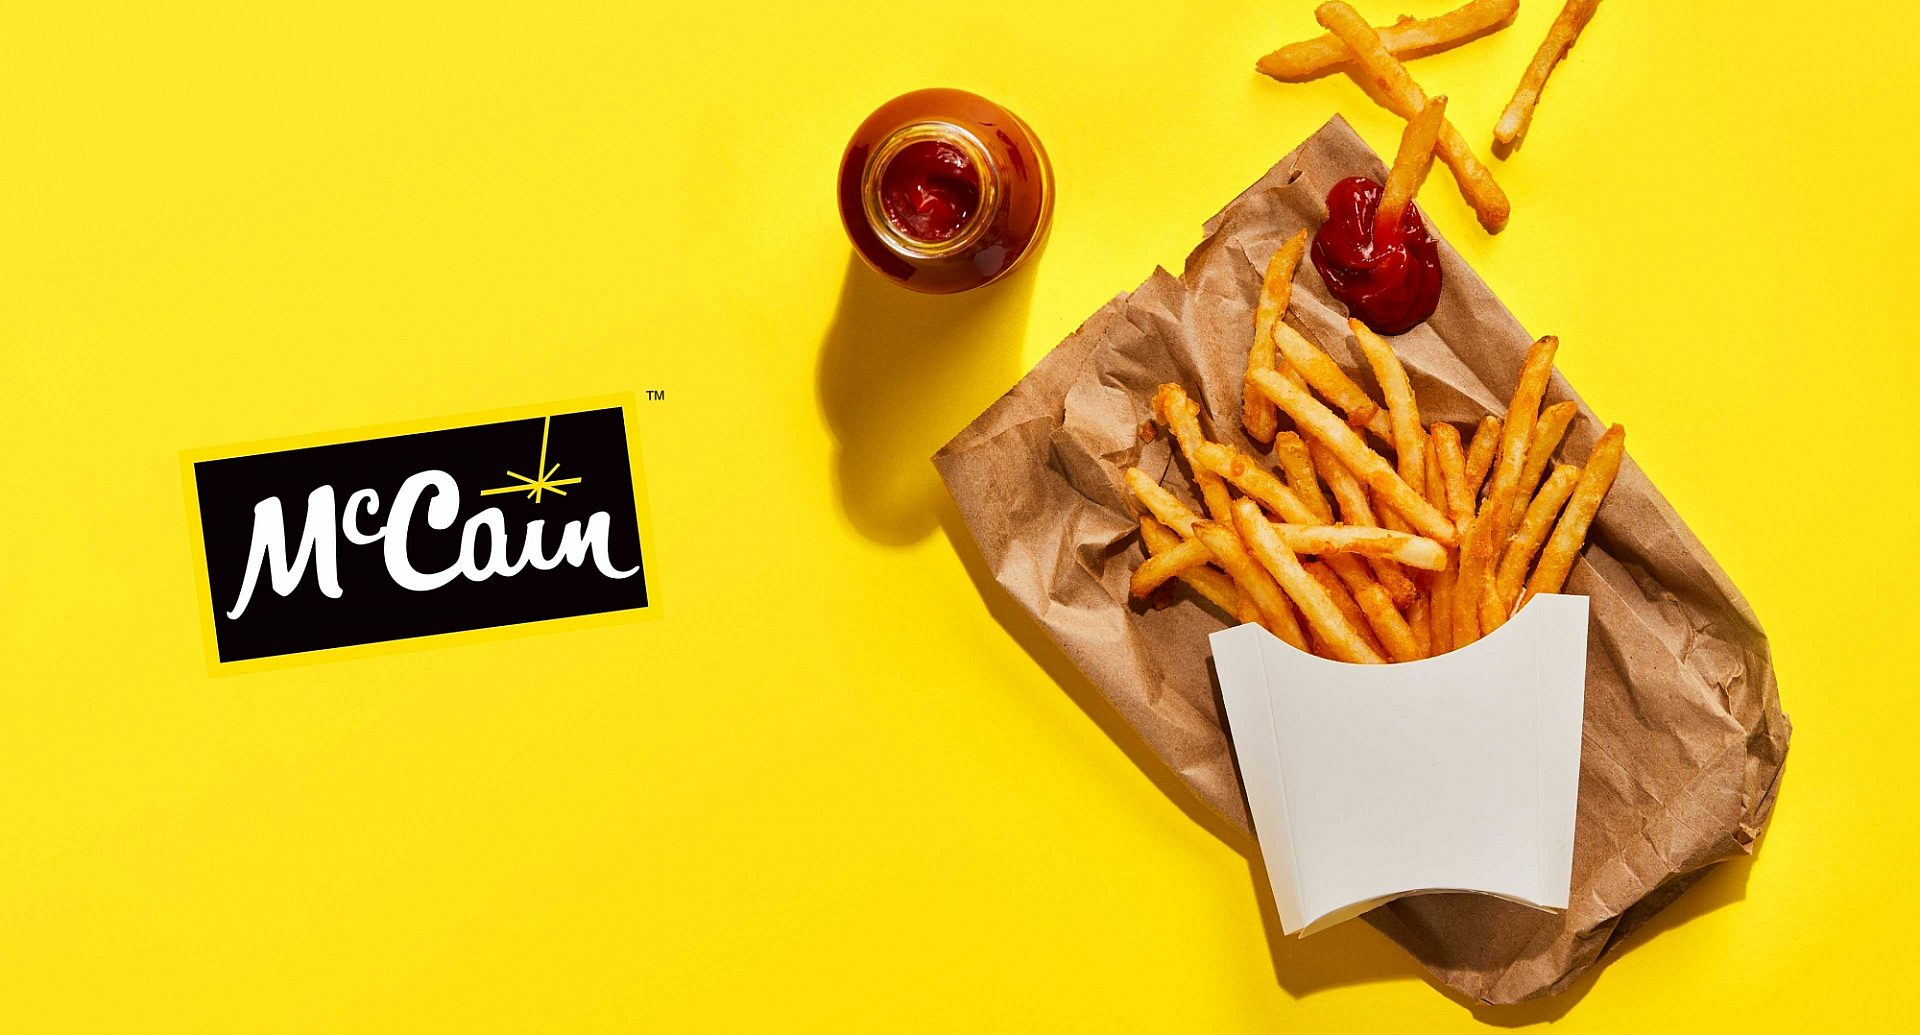 McCain Foodservice logo and a carton of fresh french fries.